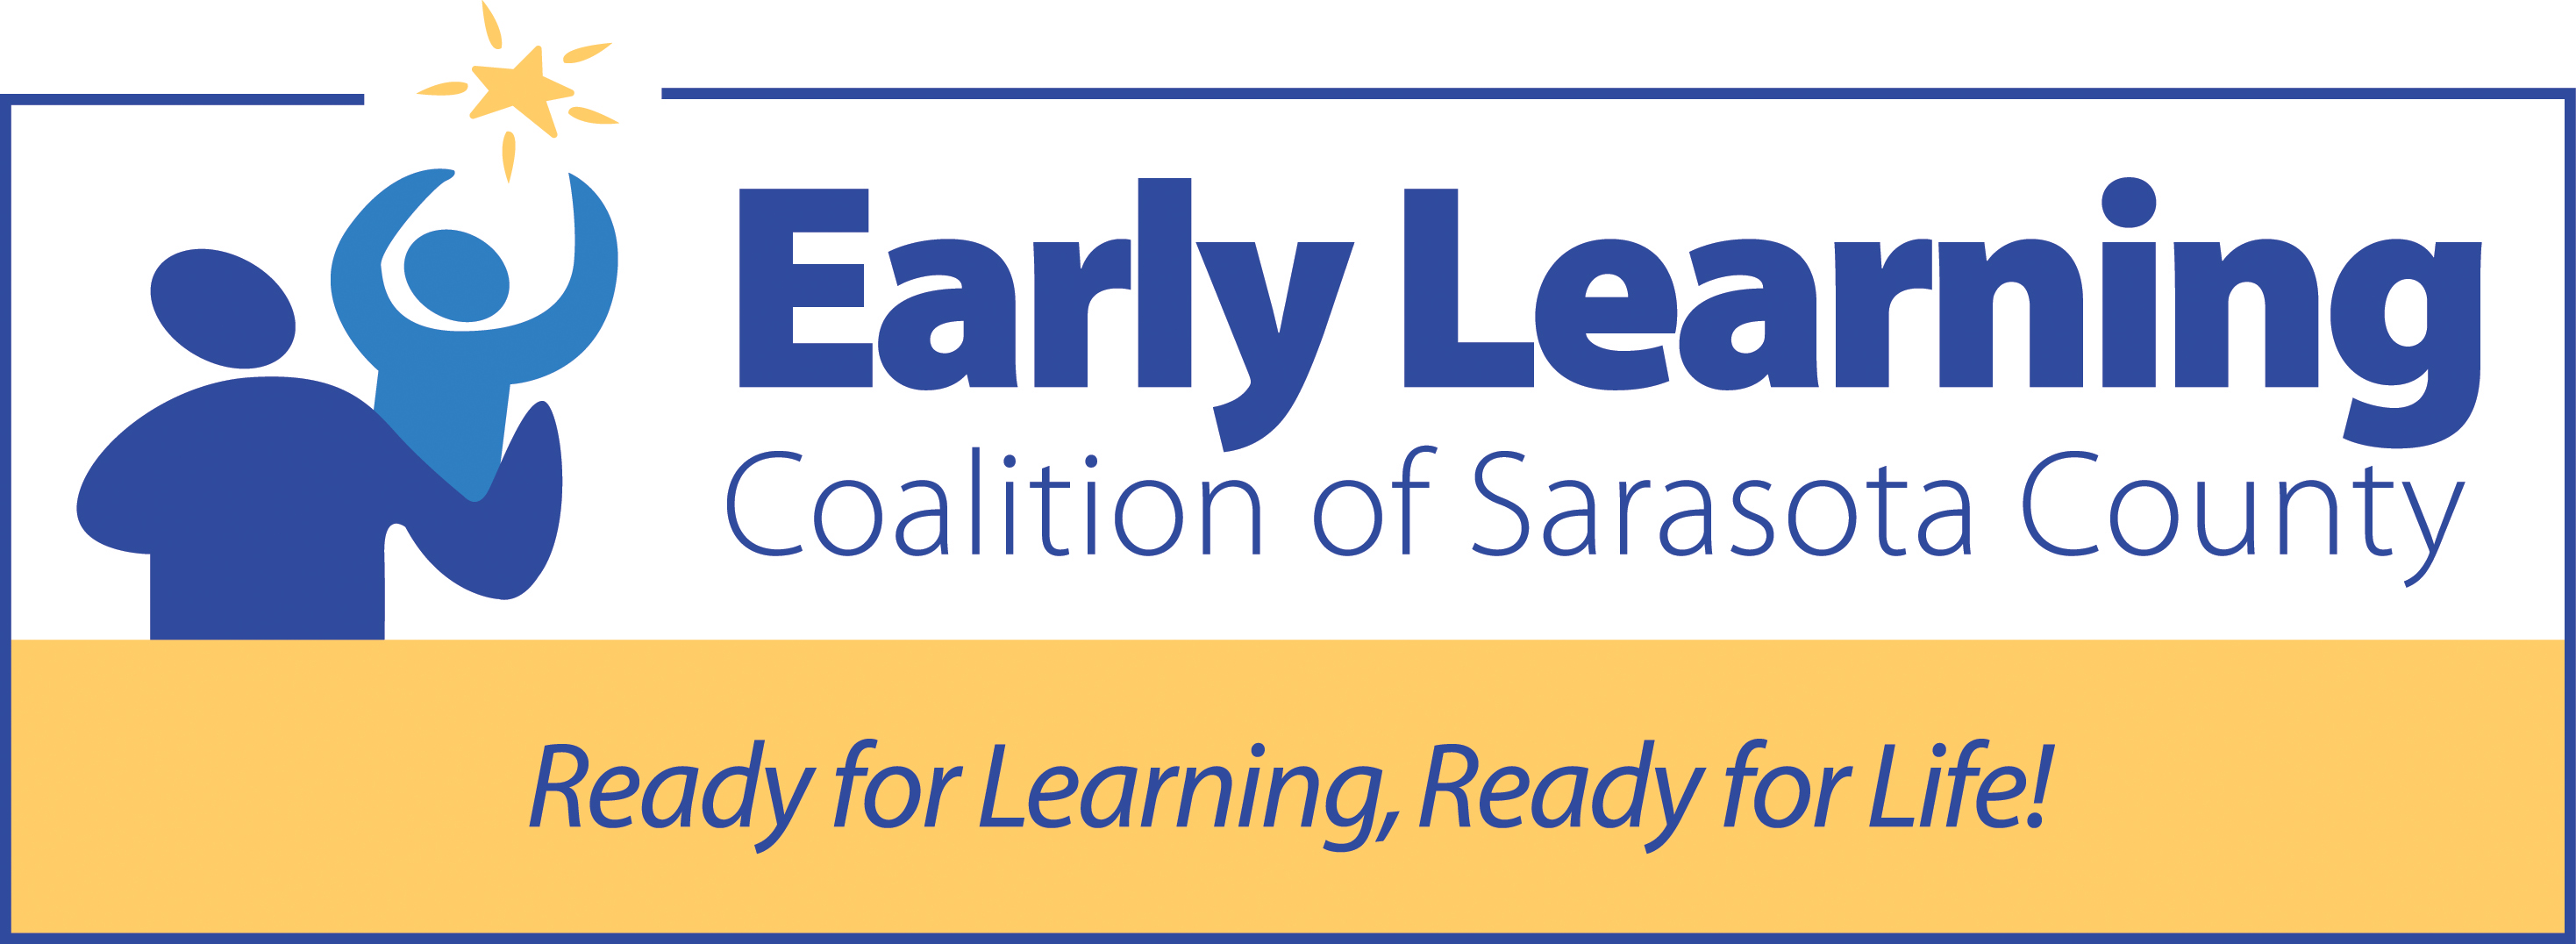 Early Learning Coaliton of Sarasota County